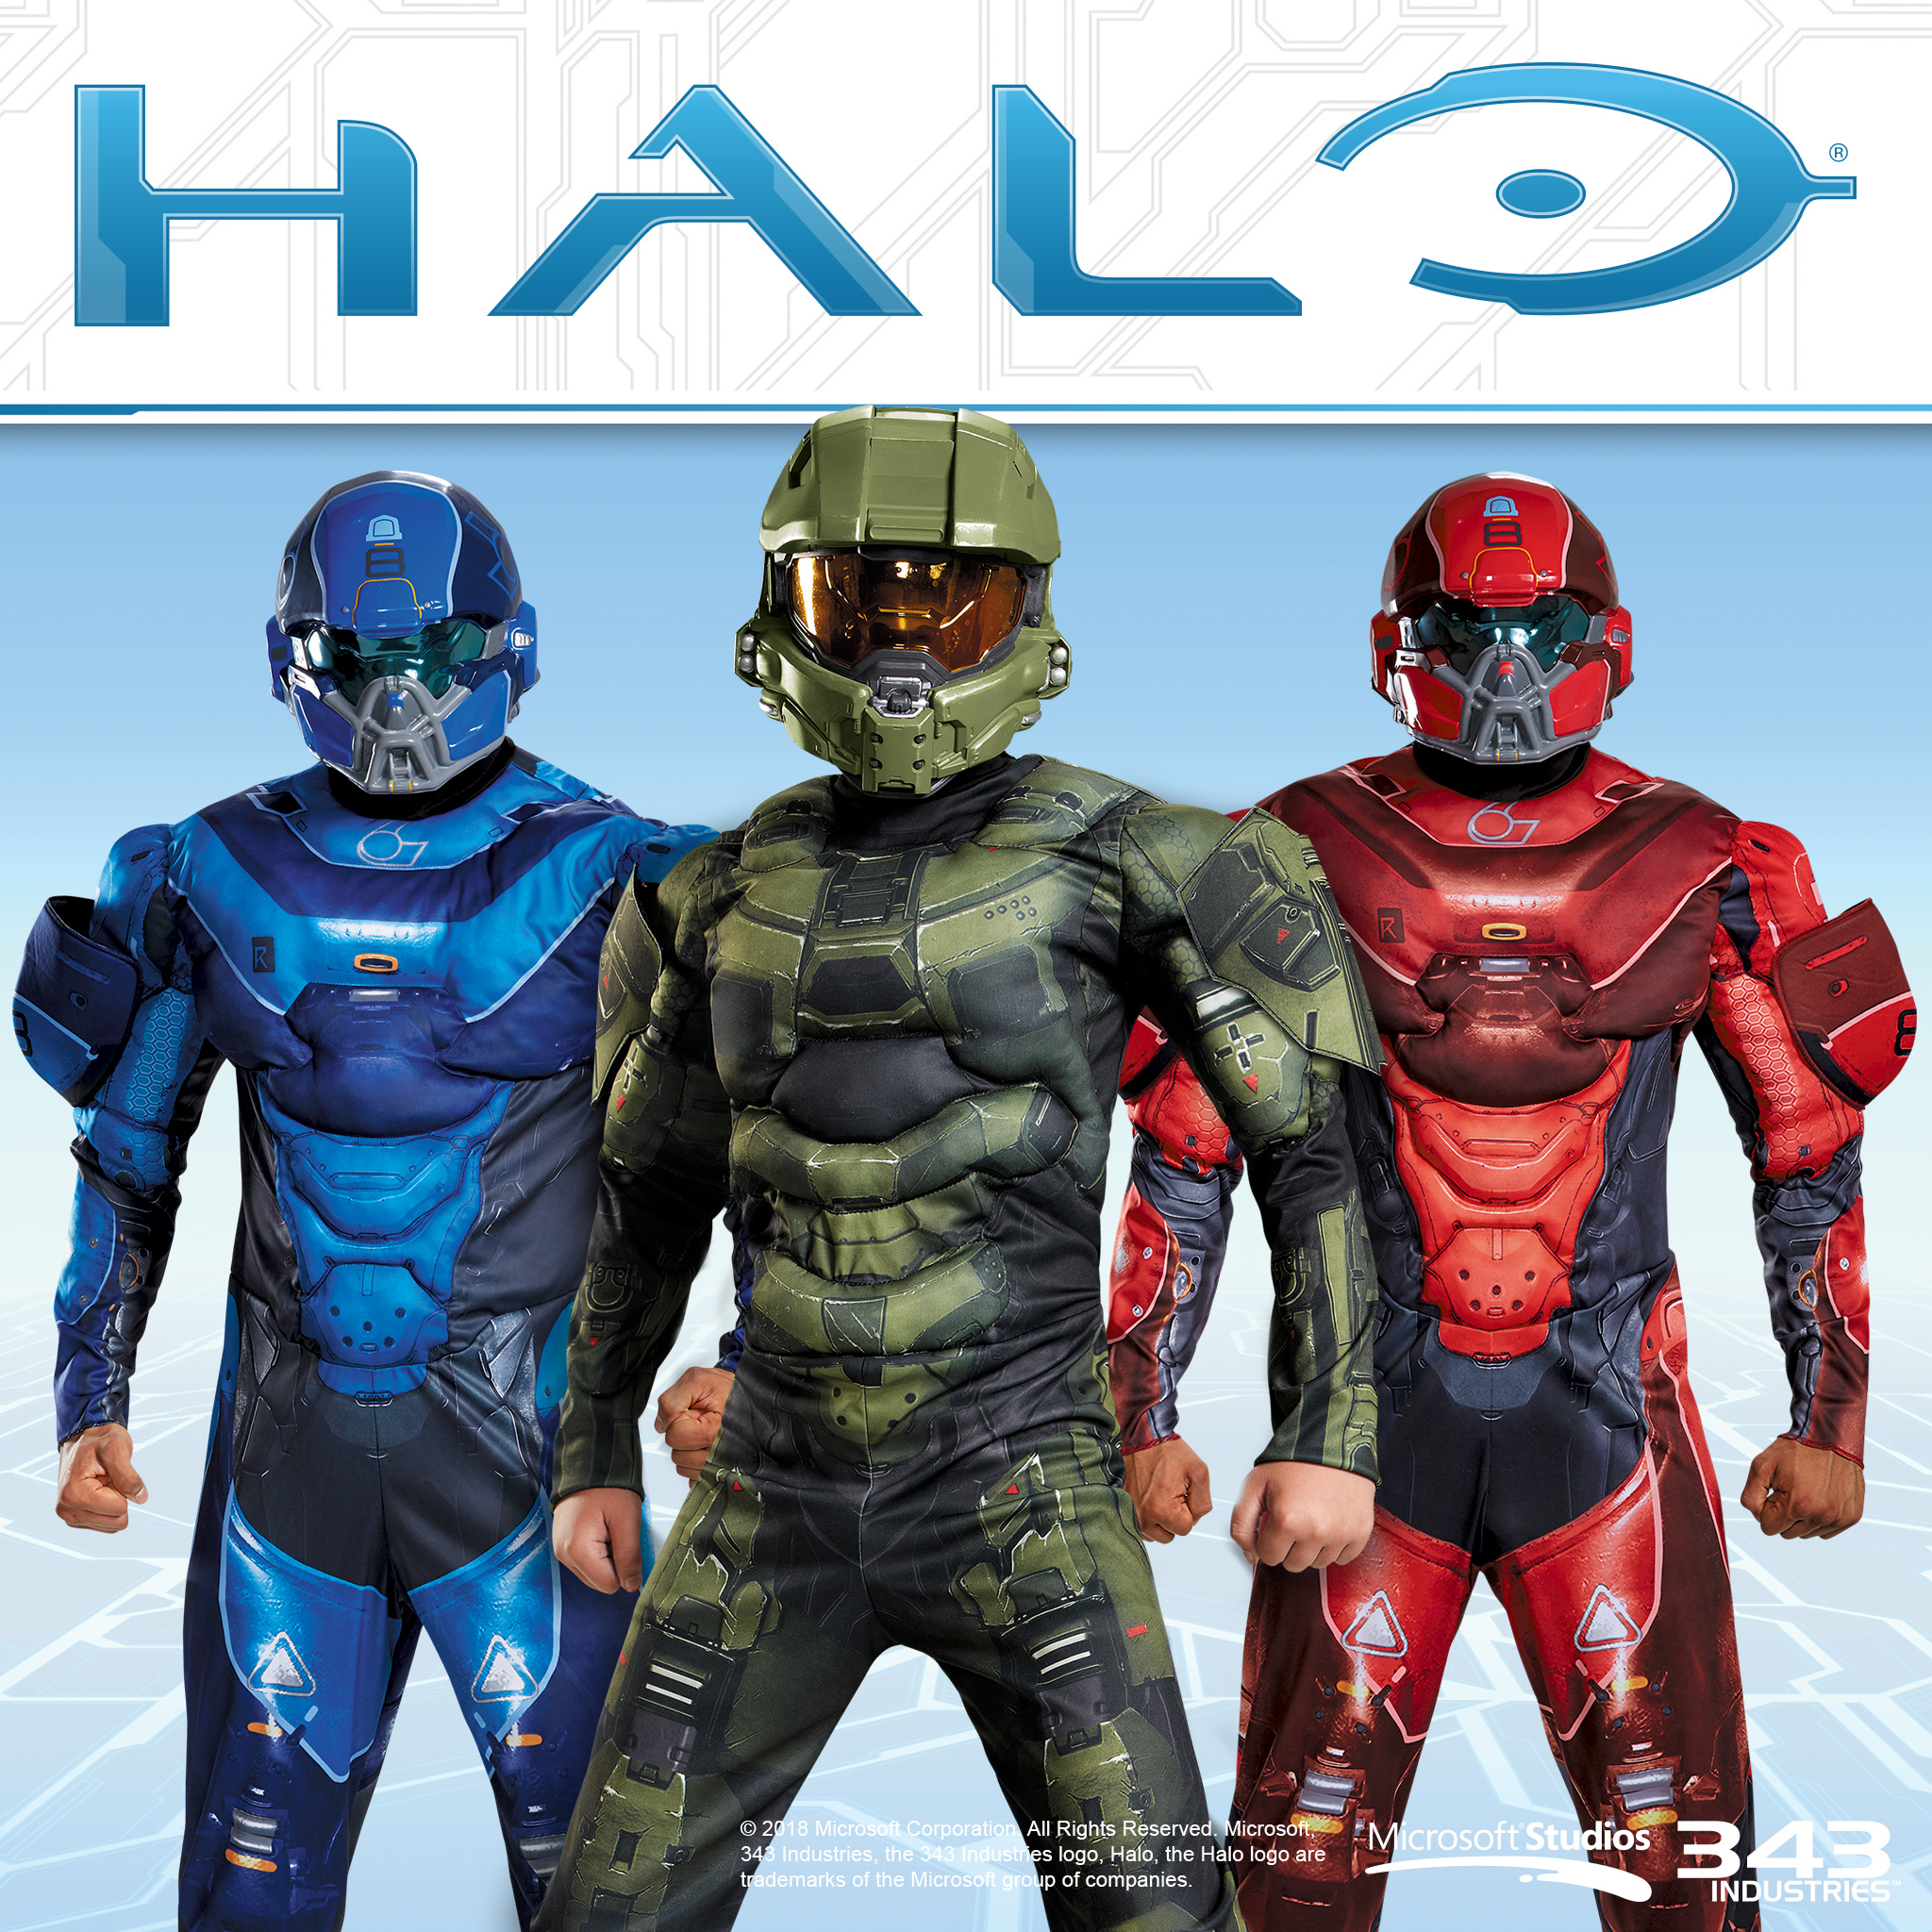 All Video Game Costumes & Accessories for Adults & Kids